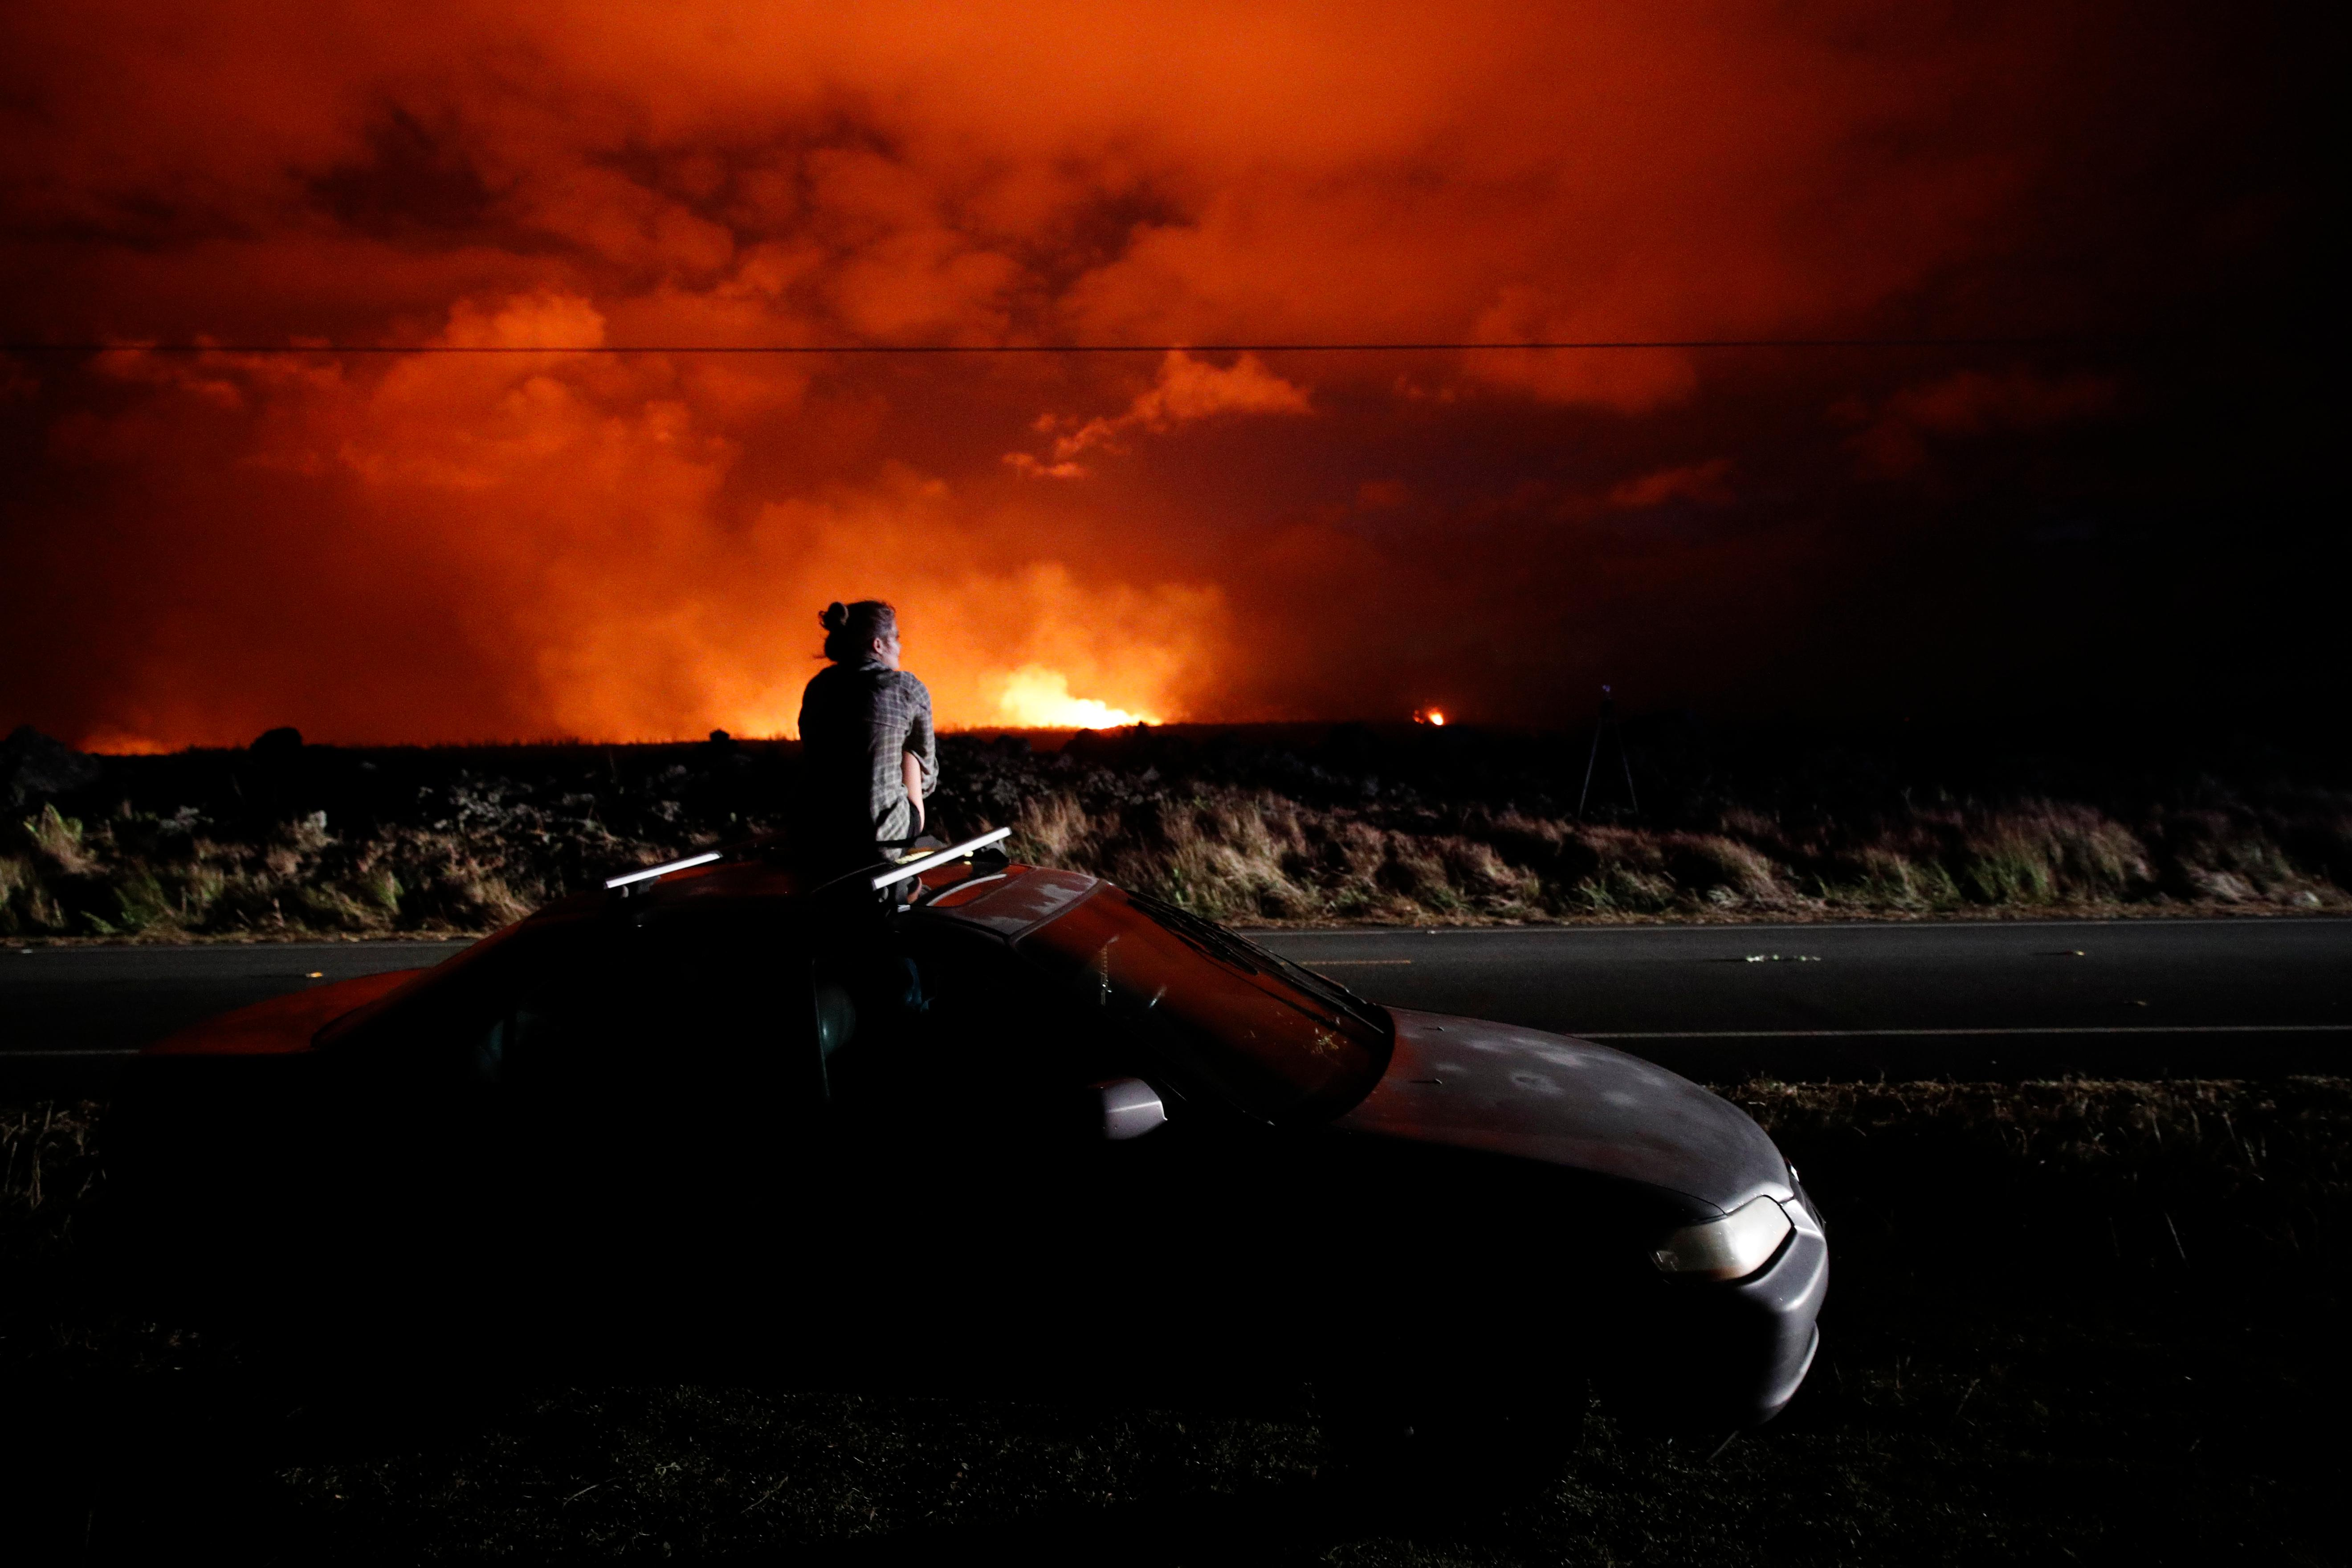 Brittany Kimball watches as lava erupts from a fissure near Pahoa, Hawaii, Saturday, May 19, 2018. Two fissures that opened up in a rural Hawaii community have merged to produce faster and more fluid lava. Scientists say the characteristics of lava oozing from fissures in the ground has changed significantly as new magma mixes with decades-old stored lava. (AP Photo/Jae C. Hong)